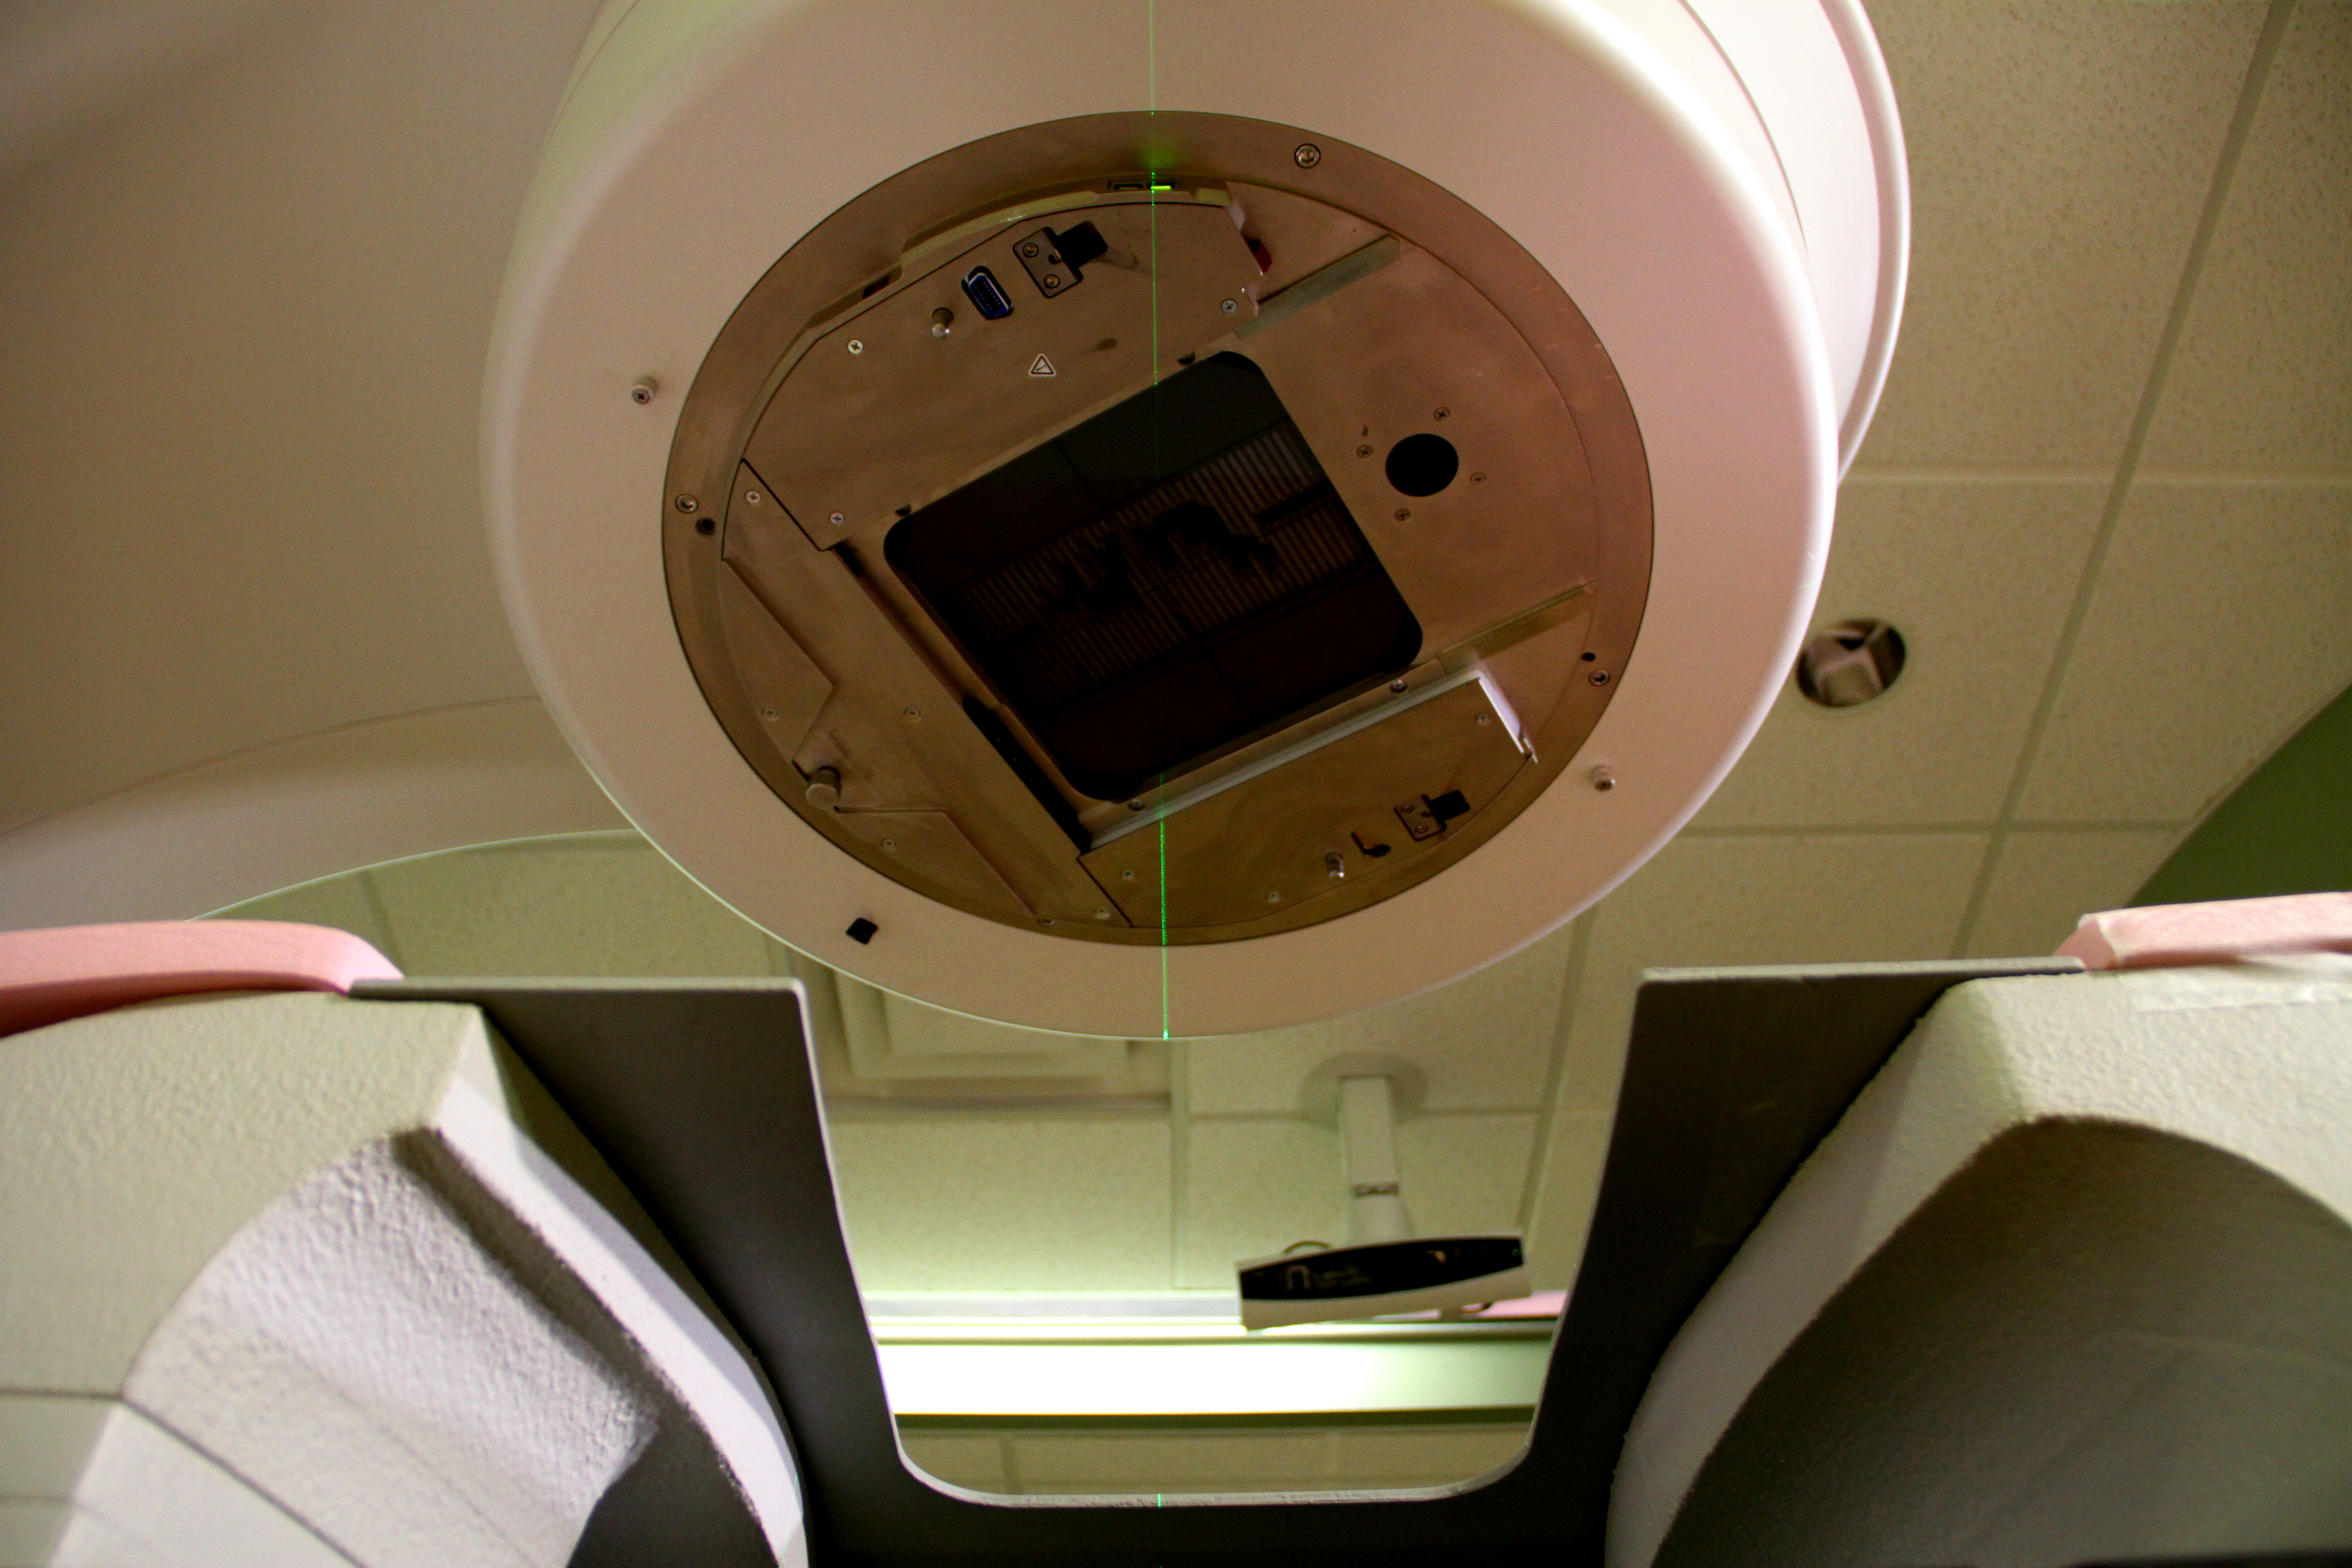 Pictures of and radiation chest wall inflammation and radiation - Experts Say Body Position In Breast Cancer Radiation Treatment Matters